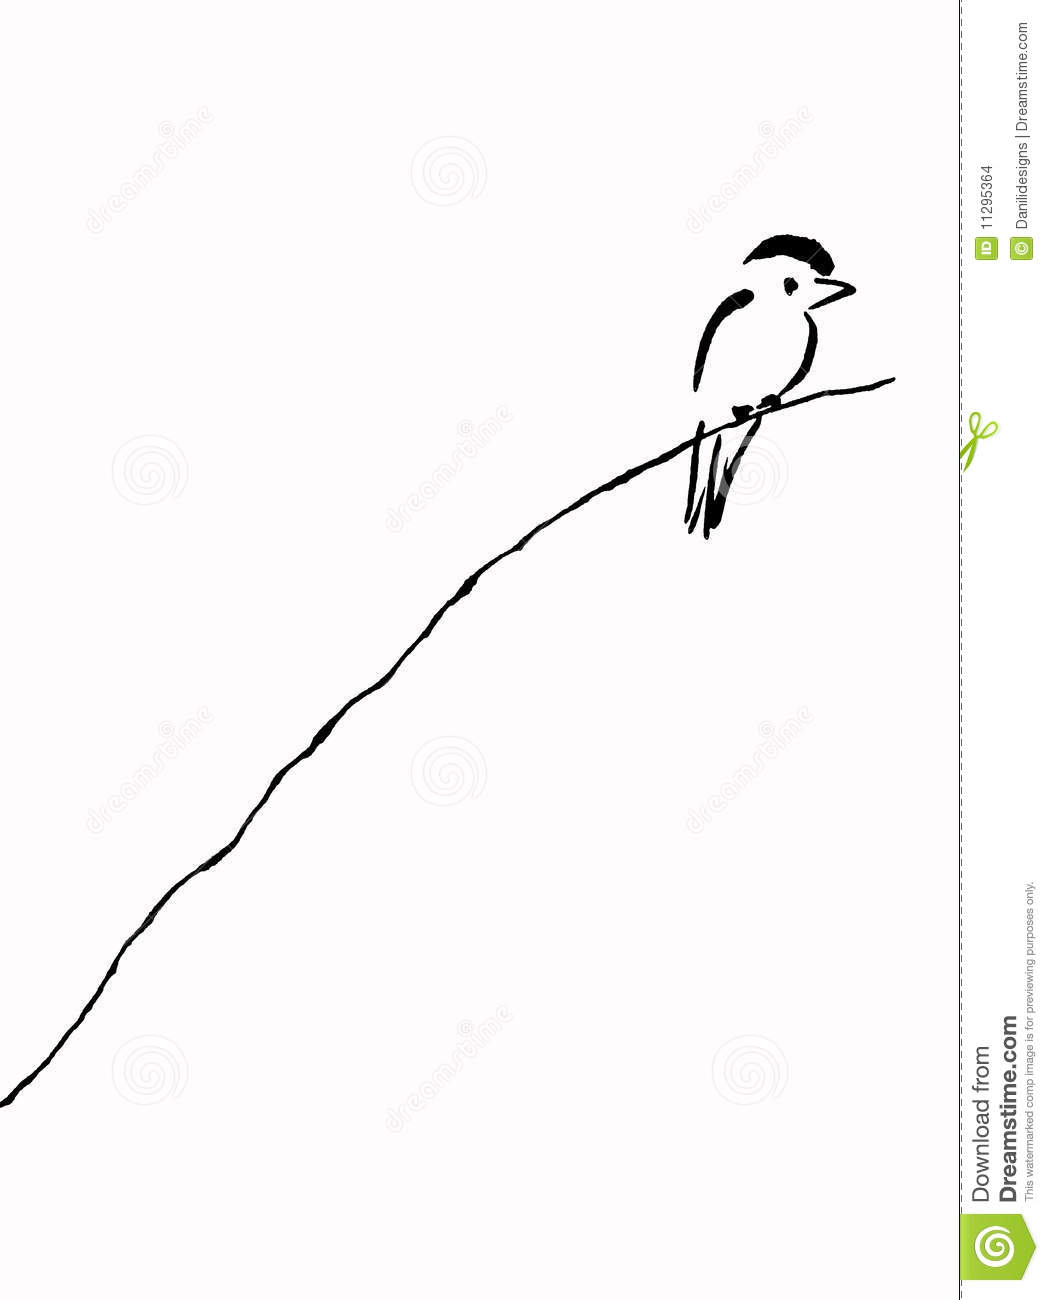 D Line Drawing Easy : Bird on branch stock illustration image of drawing sweet